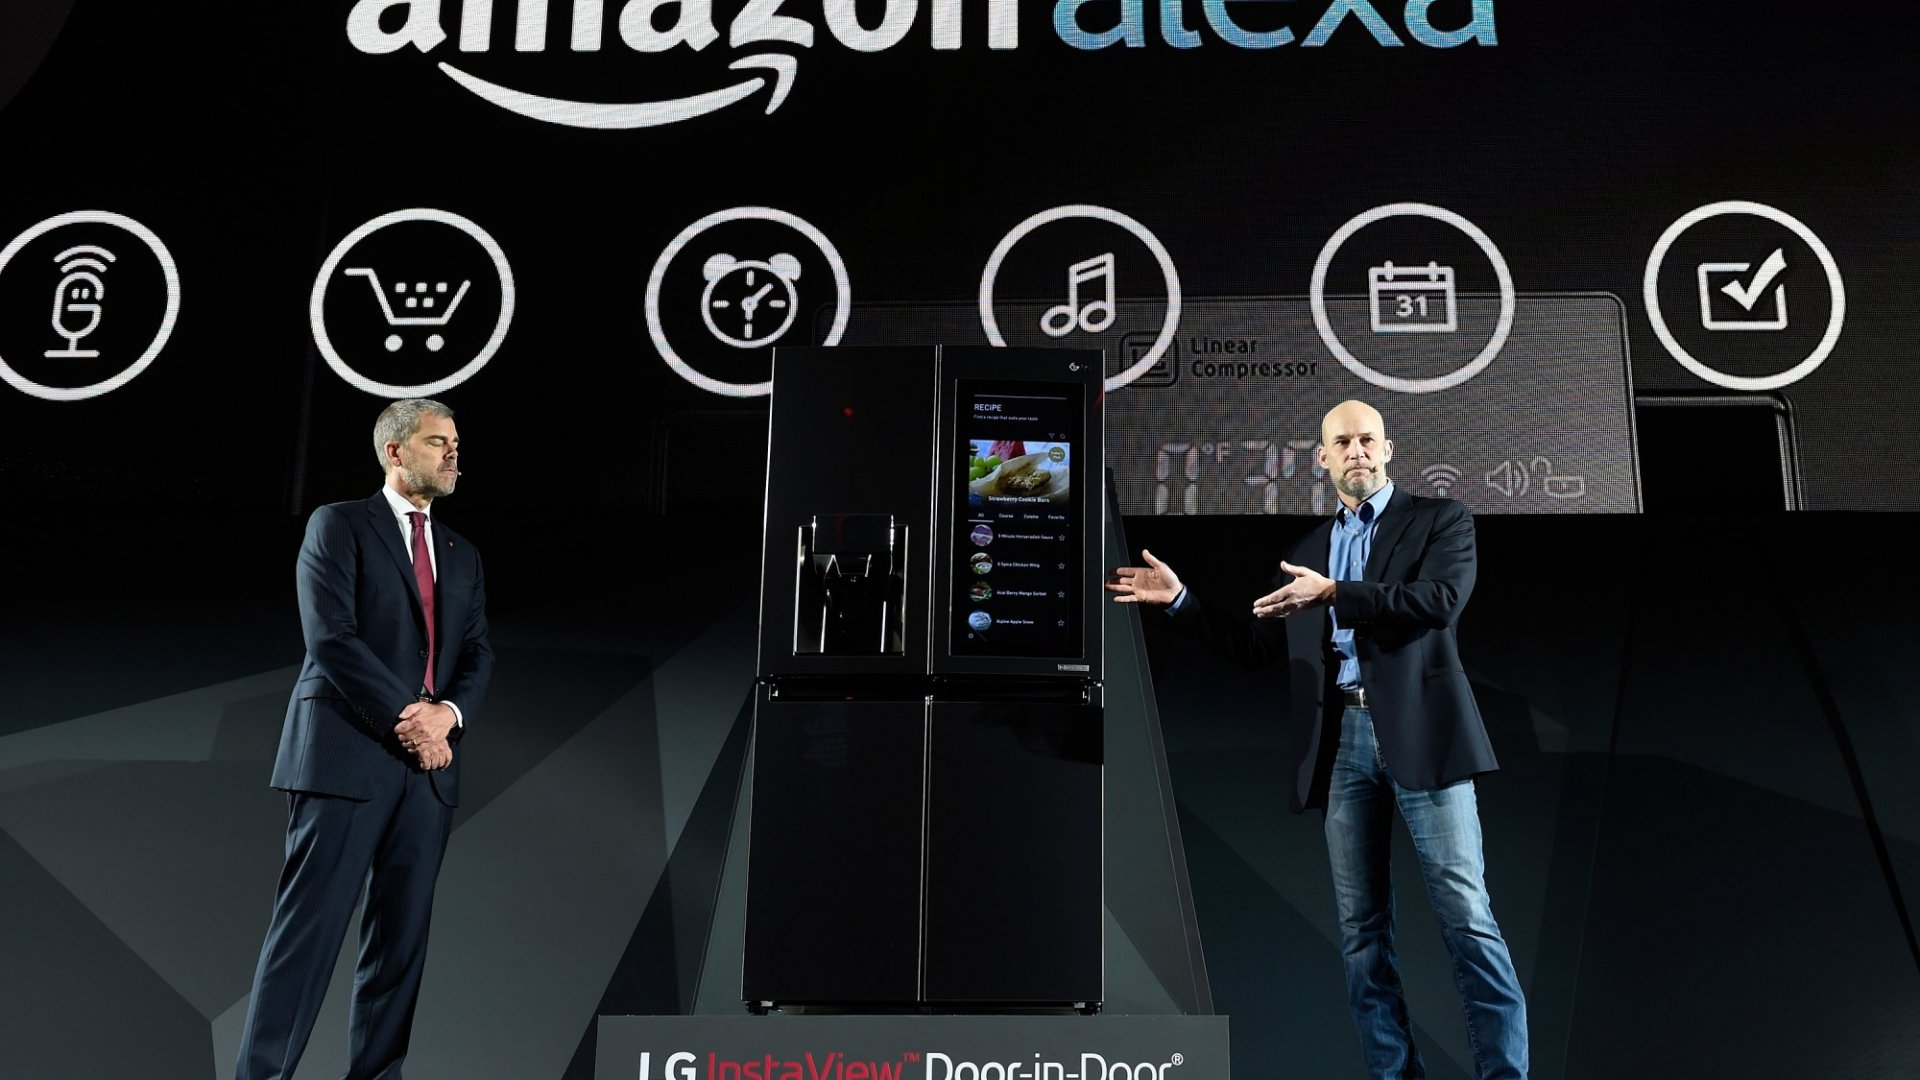 Amazon's Alexa Is About to Sound More Like a Human. Here's How